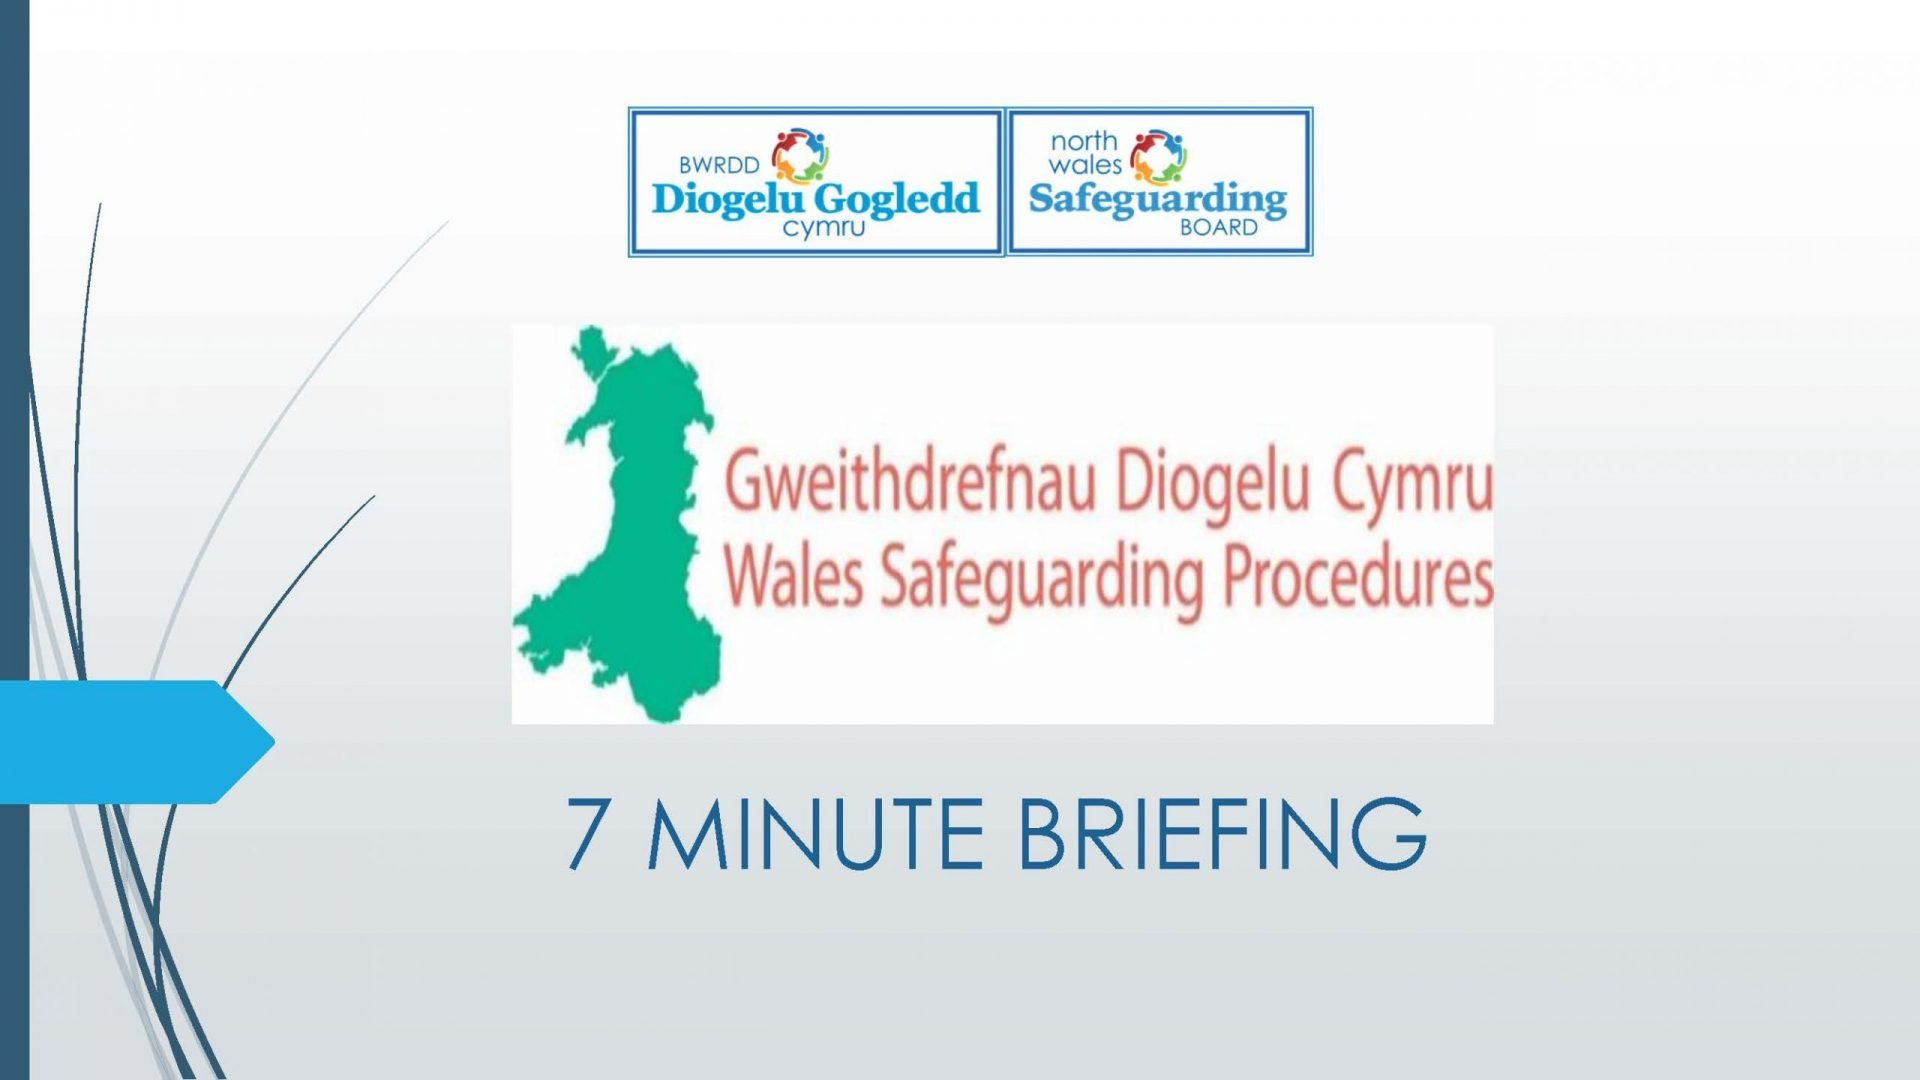 7 Minute Briefing - Wales Safeguarding Procedures